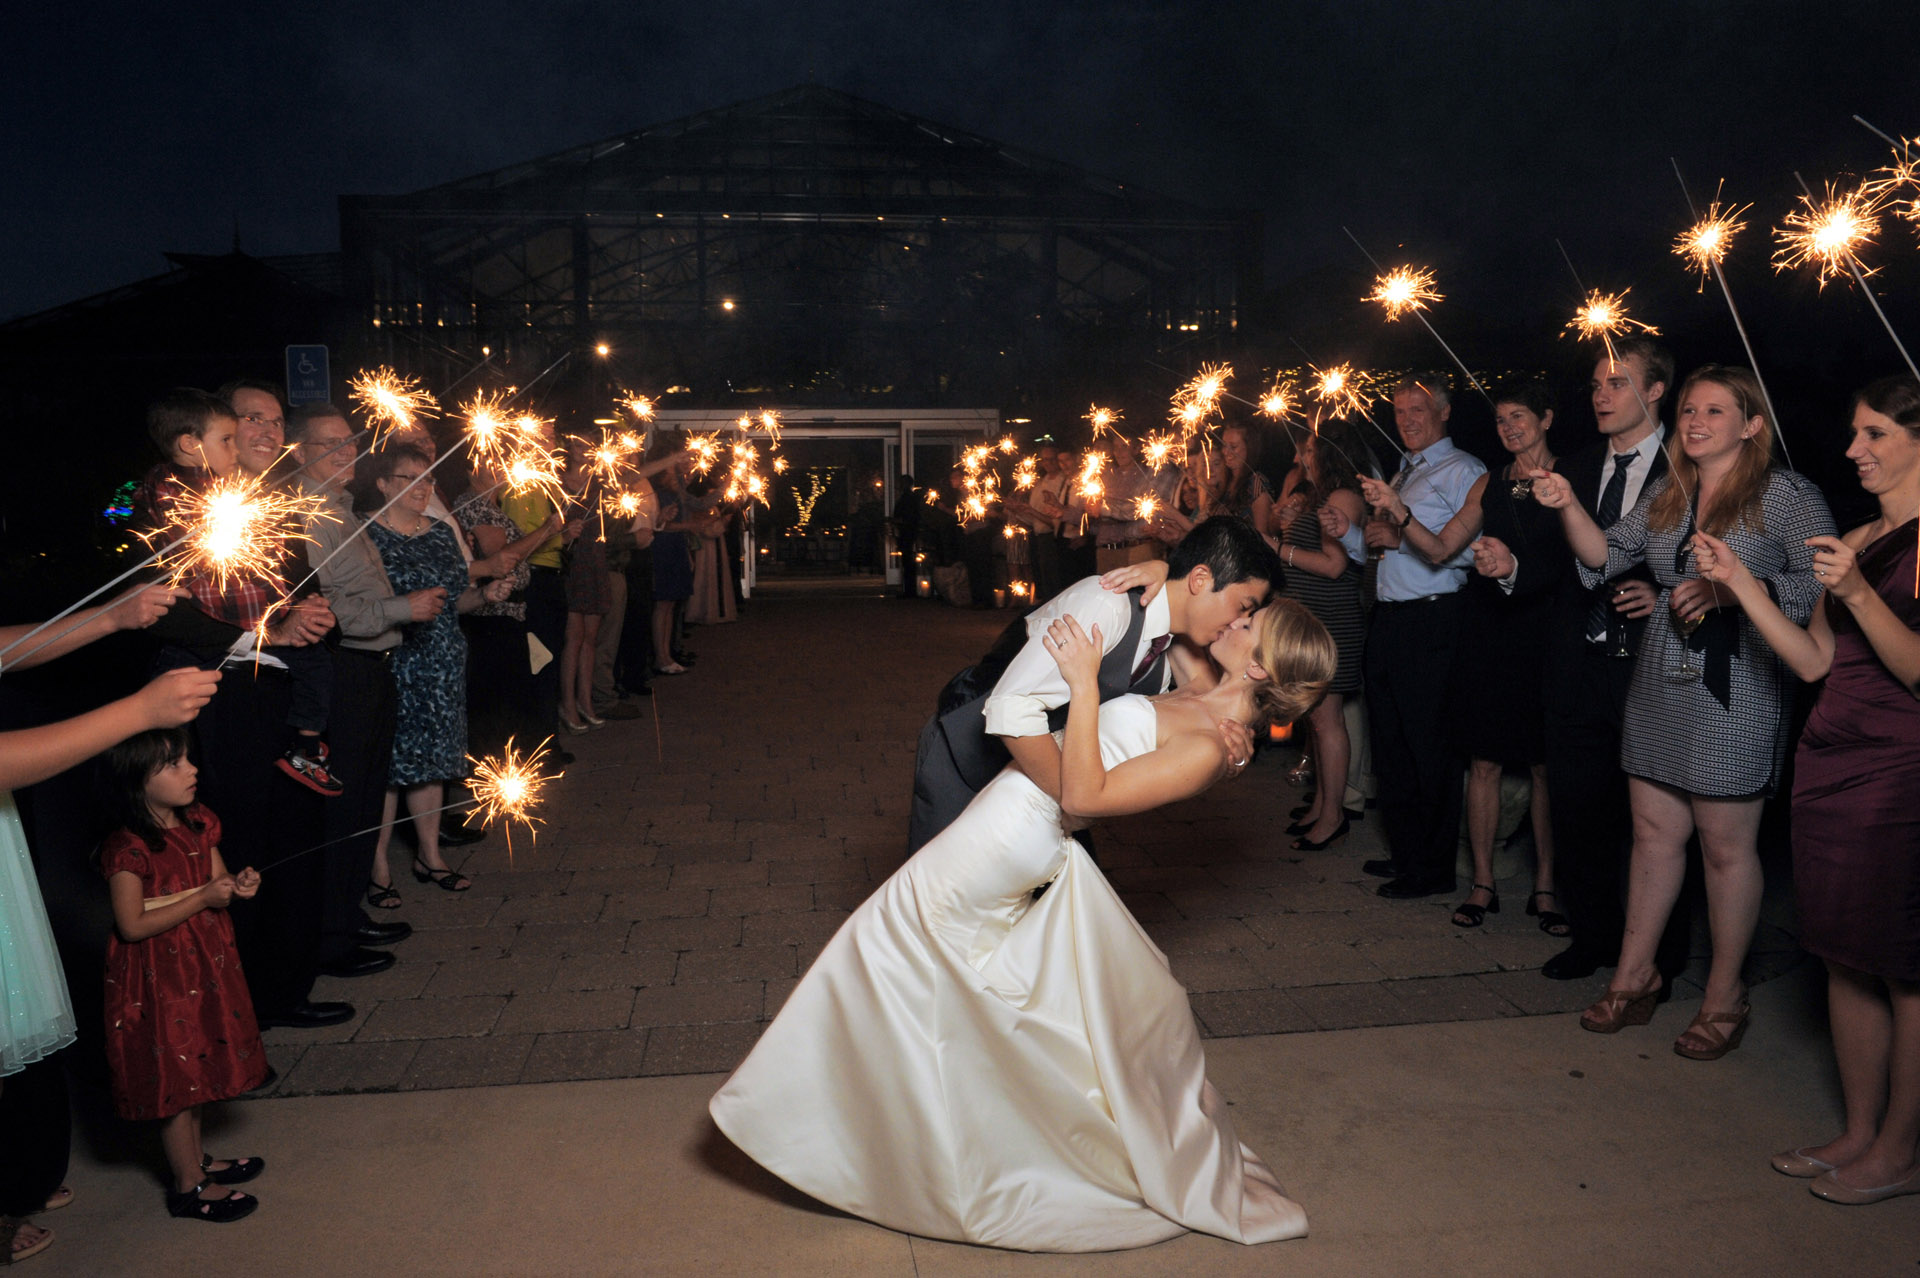 Planterra Conservatory wedding photographer's photo of the bride and groom dipping outside during a sparkler exit at the Planterra Conservatory in West Bloomfield, Michigan.